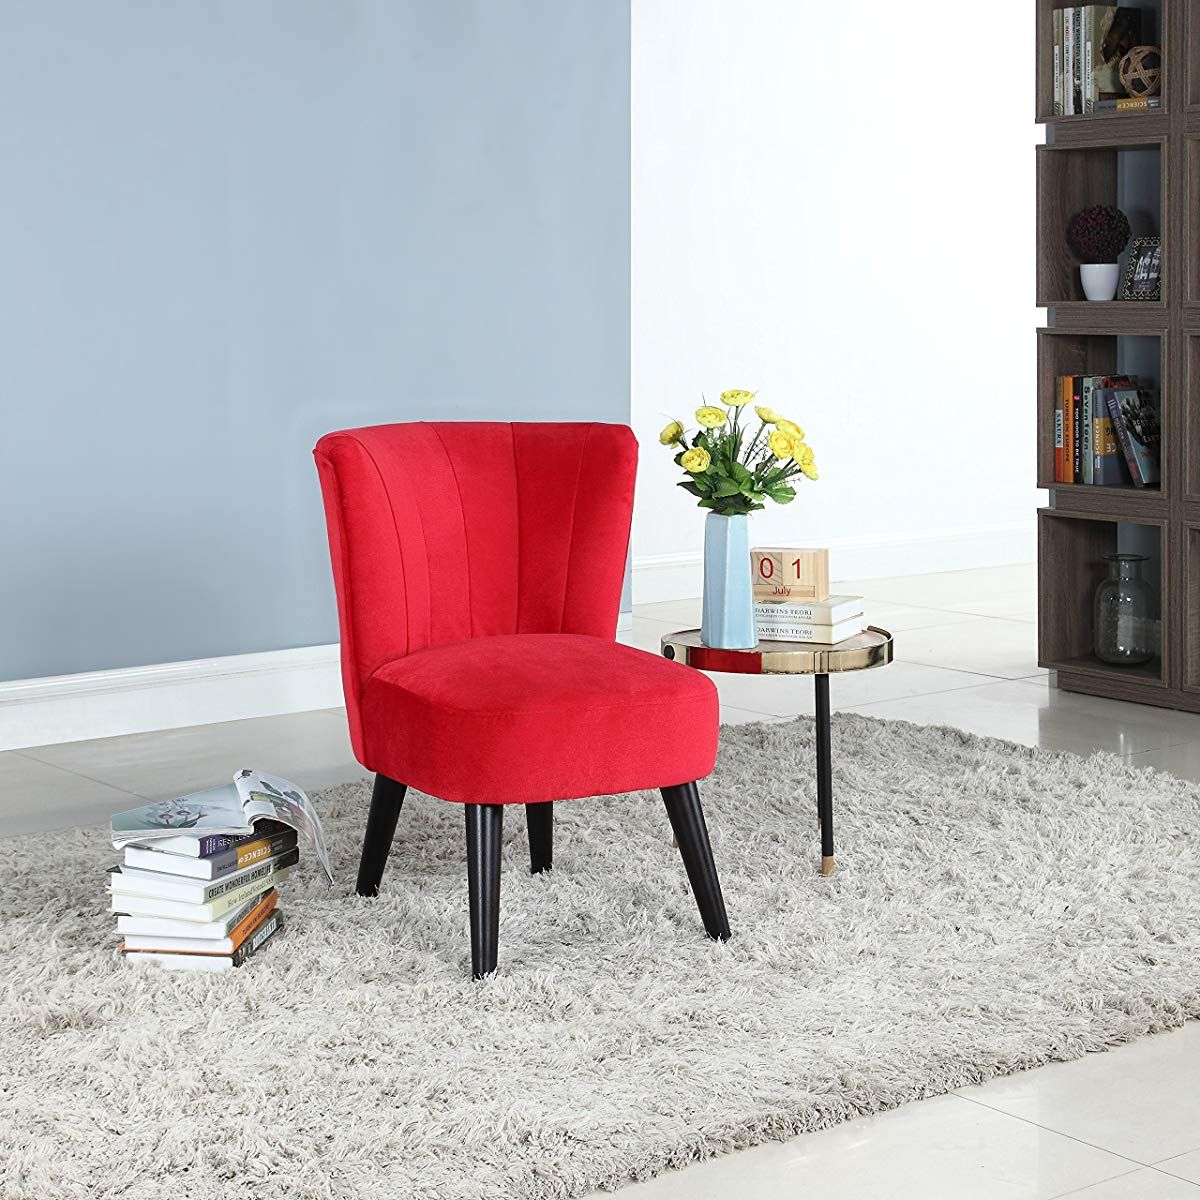 Classic Velvet Fabric Accent Chair Red Living Room Chairs Modern Fabric Accent Chair Accent Chairs For Living Room #red #accent #chairs #for #living #room